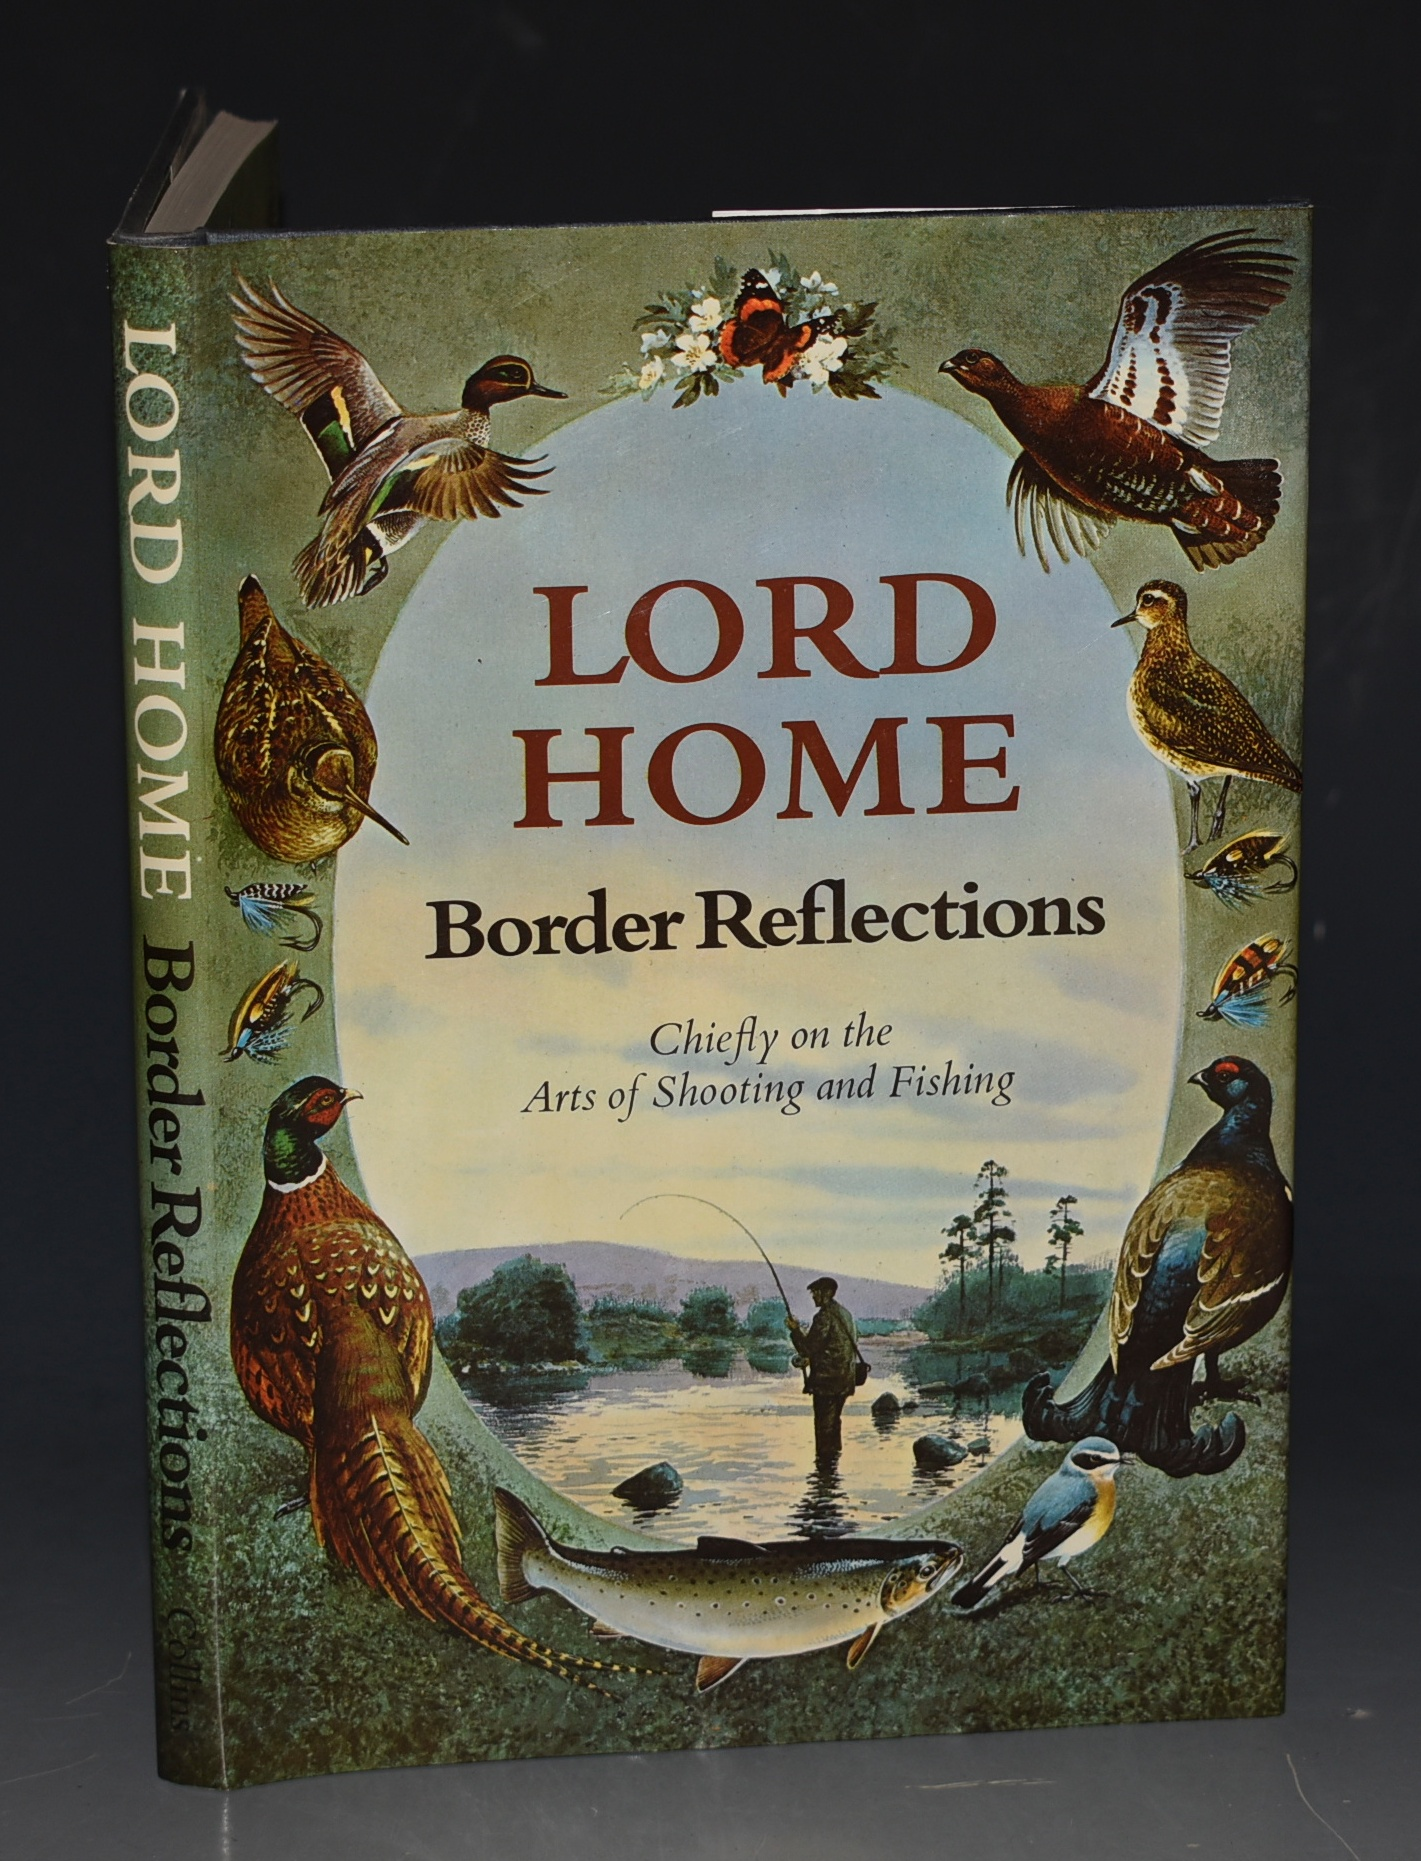 Image for Border Reflections Chiefly on the Arts of Shooting and Fishing. Illustrations by Rodger McPhail.